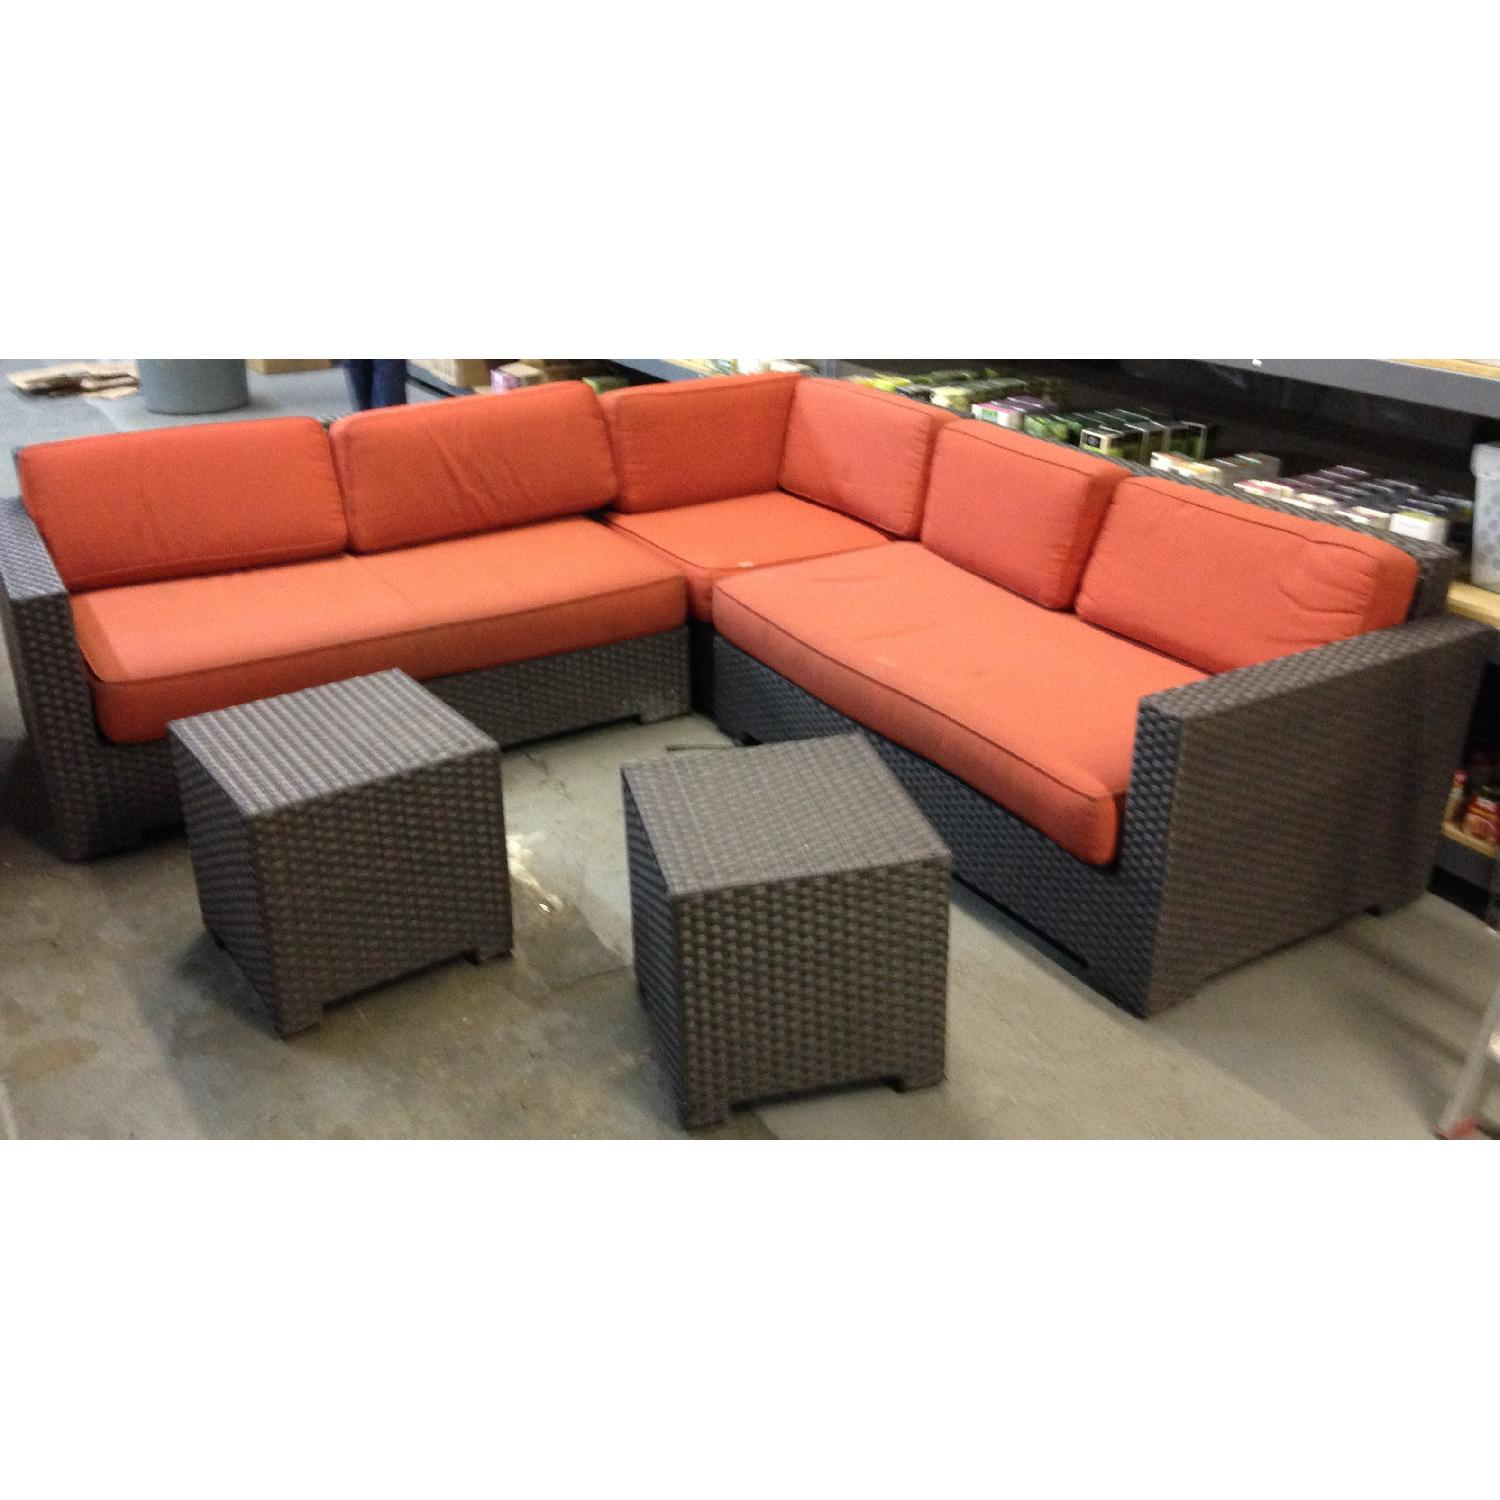 Crate & Barrel Ventura Modular 3 Piece Sectional & 2 Bunching Tables - image-1